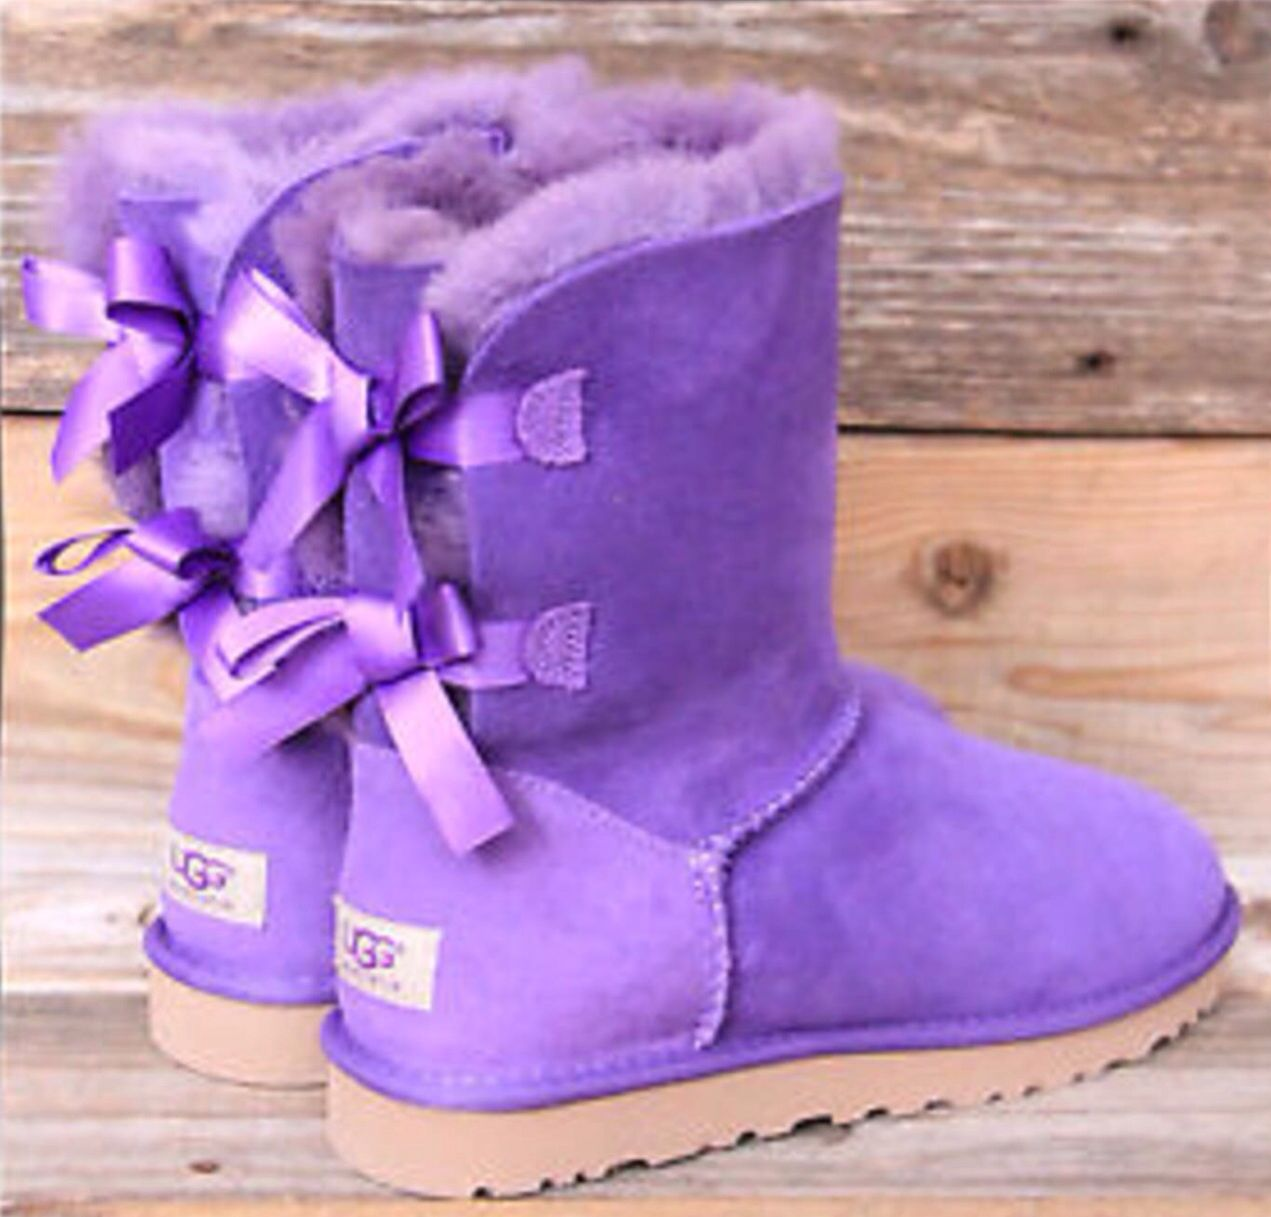 Purple uggs WITH BOWS!i want these for my birthday!